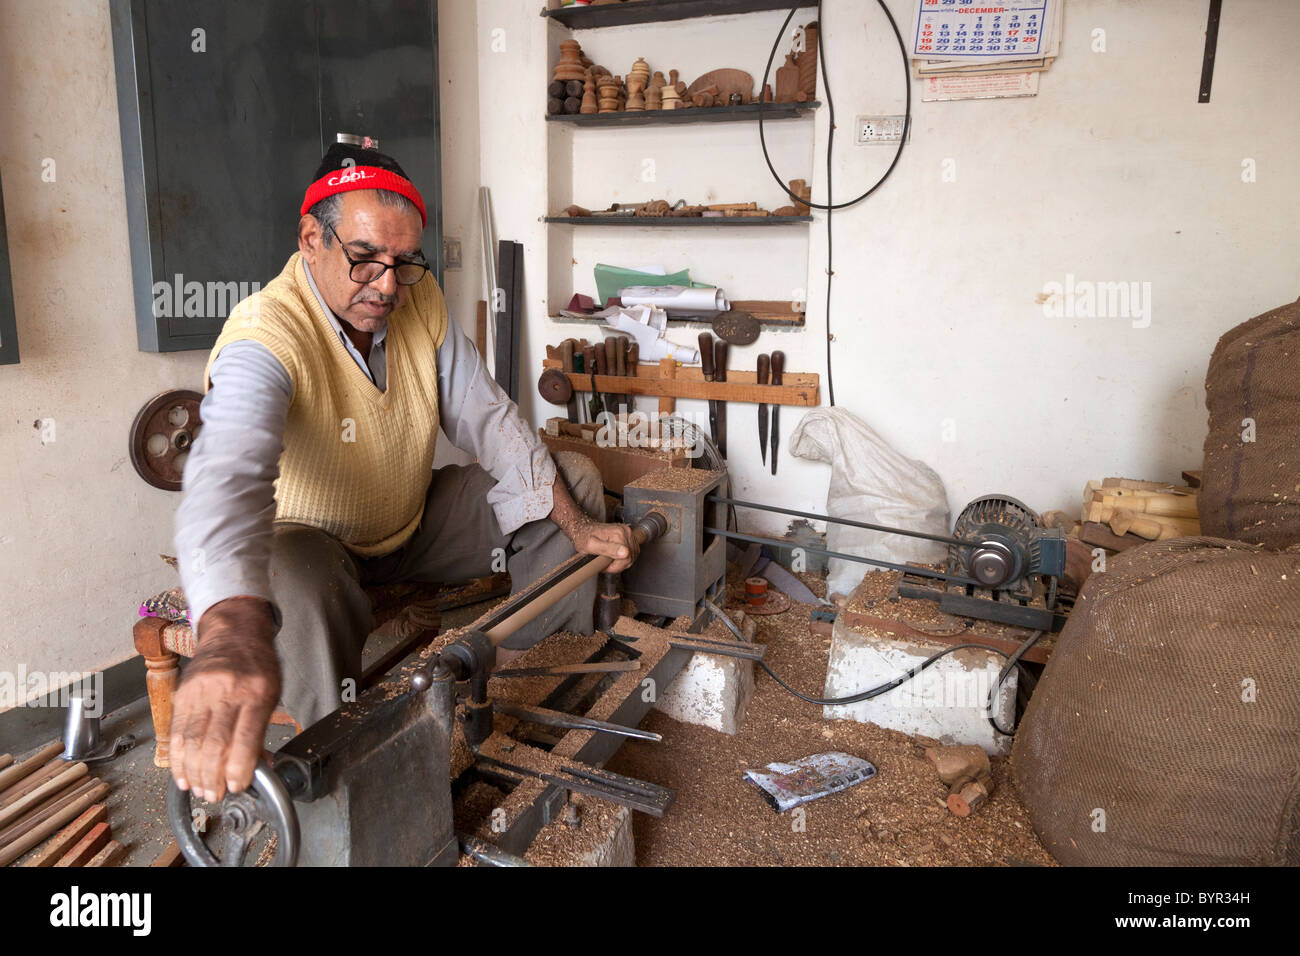 india, Rajasthan, Udaipur, wood turner using lathe in old city - Stock Image